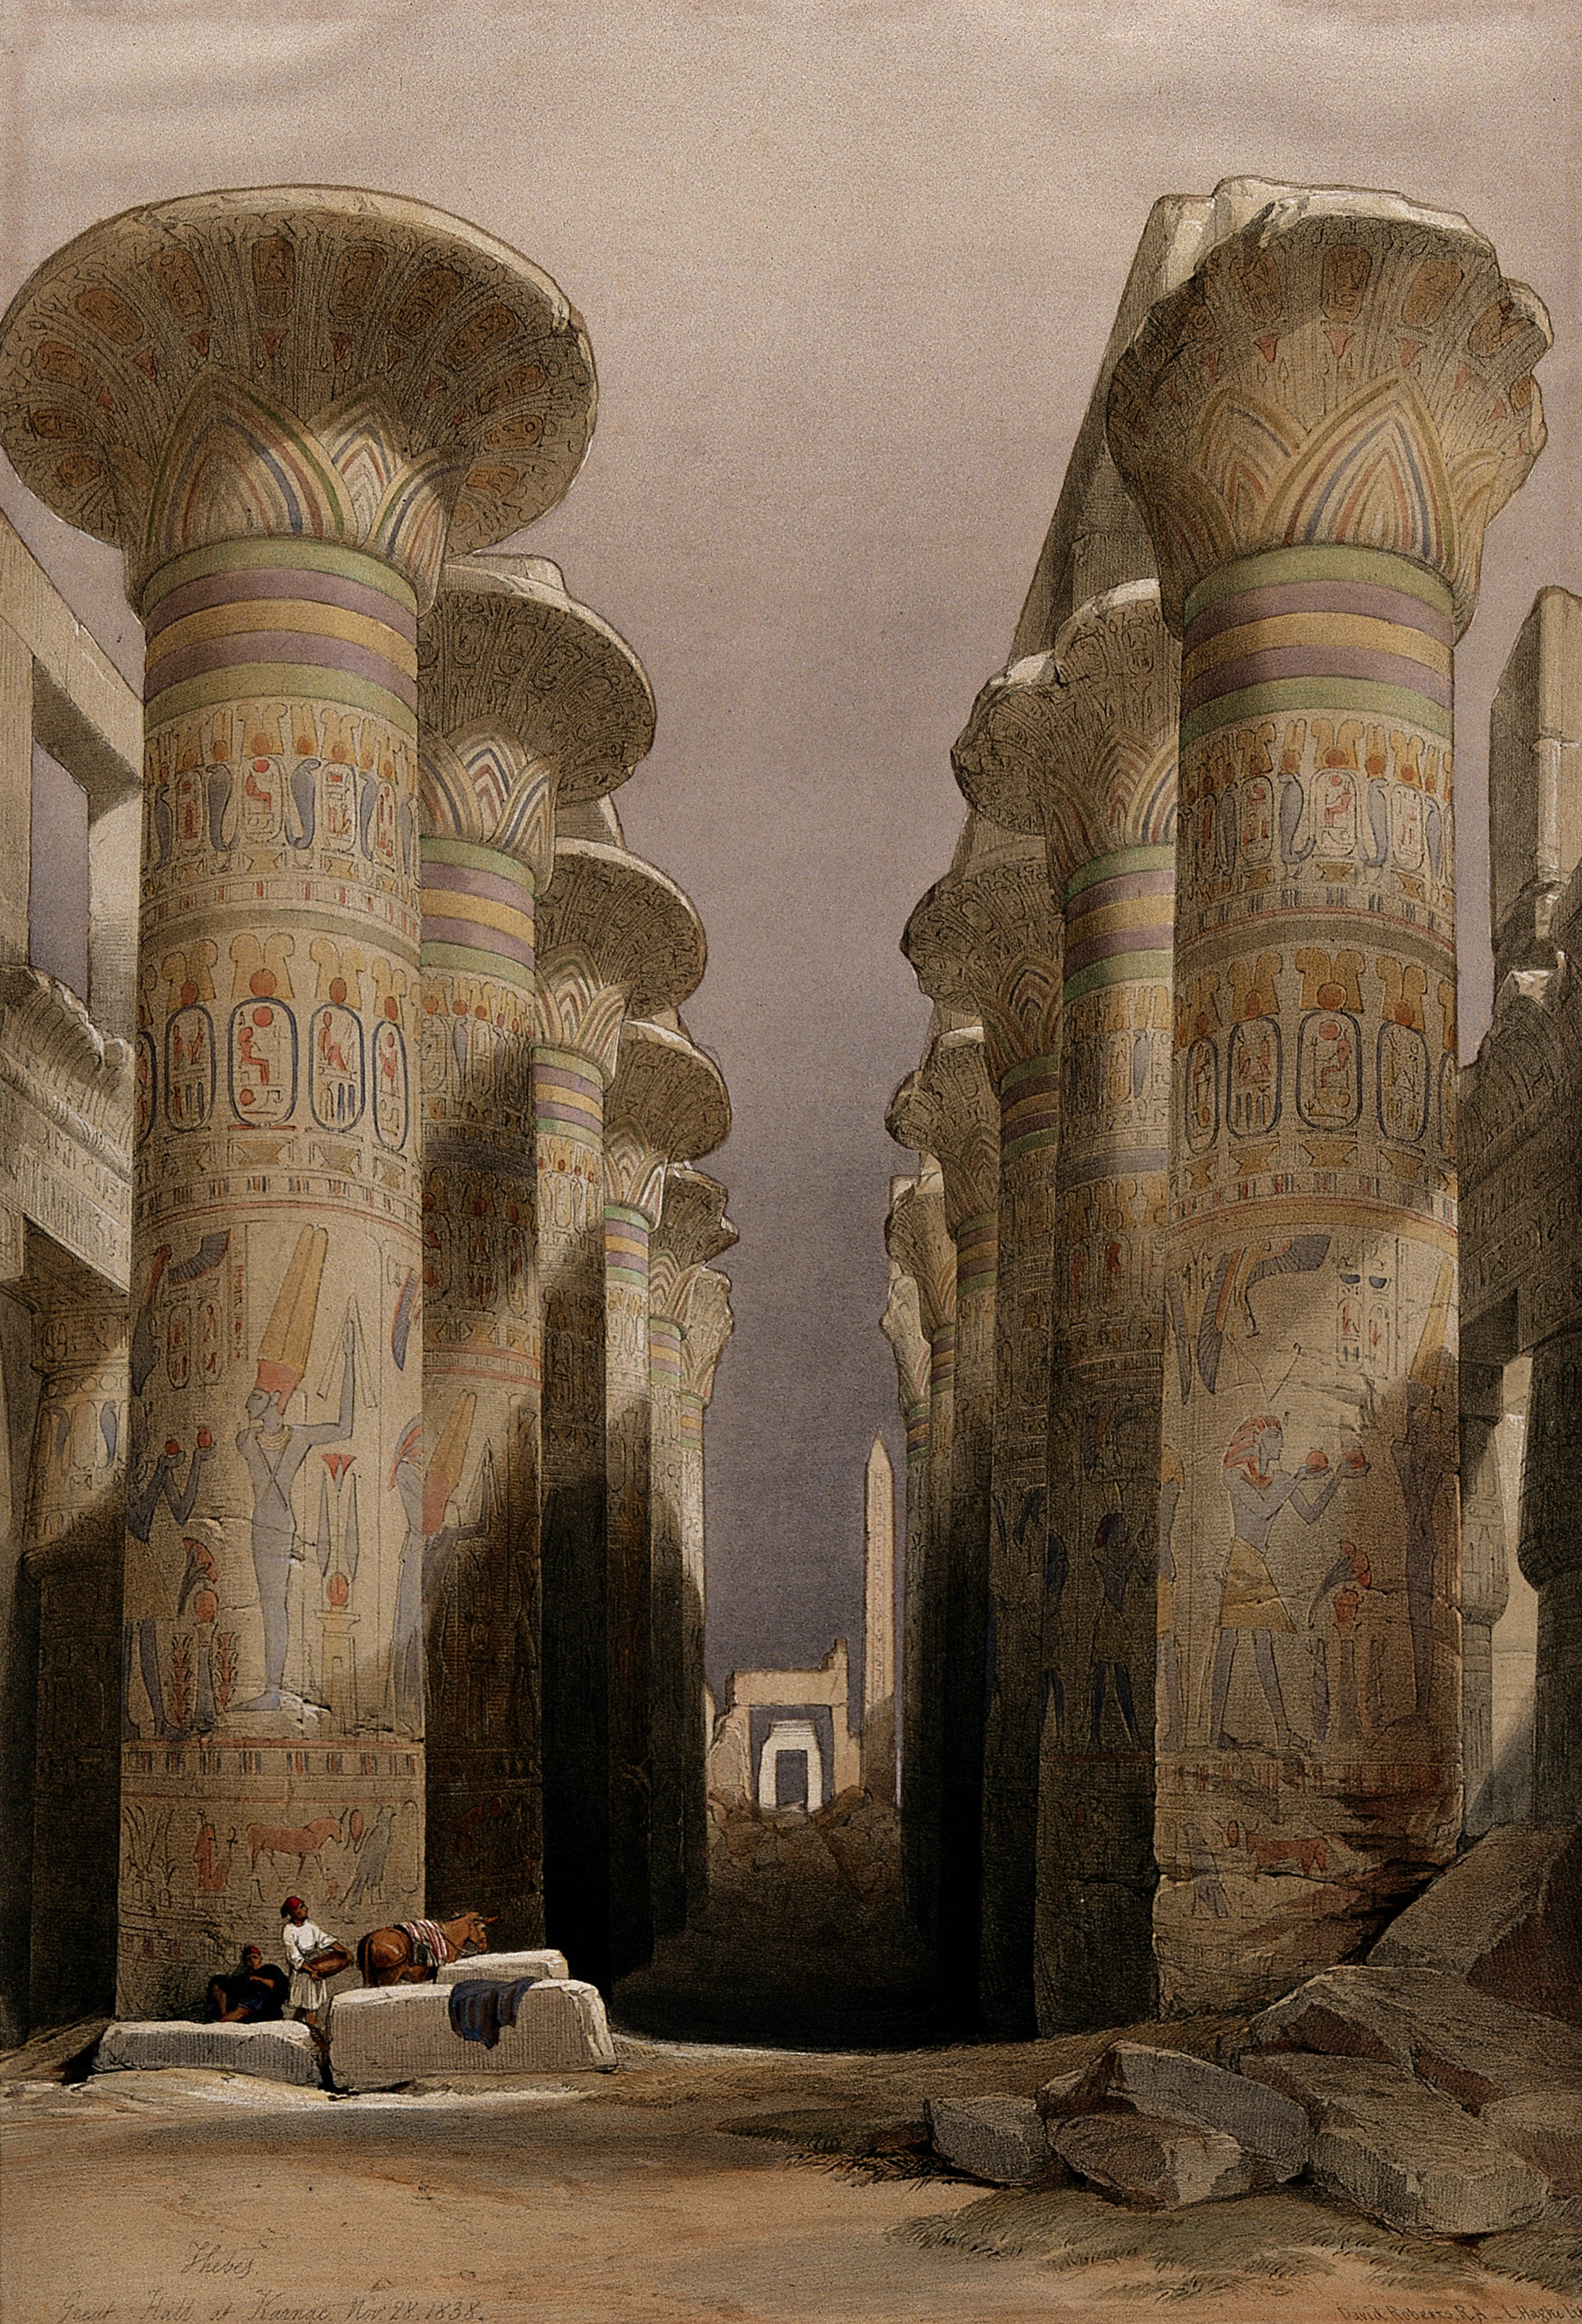 decorated_pillars_of_the_temple_at_karnac_thebes_egypt_co_wellcome_v0049316.jpg